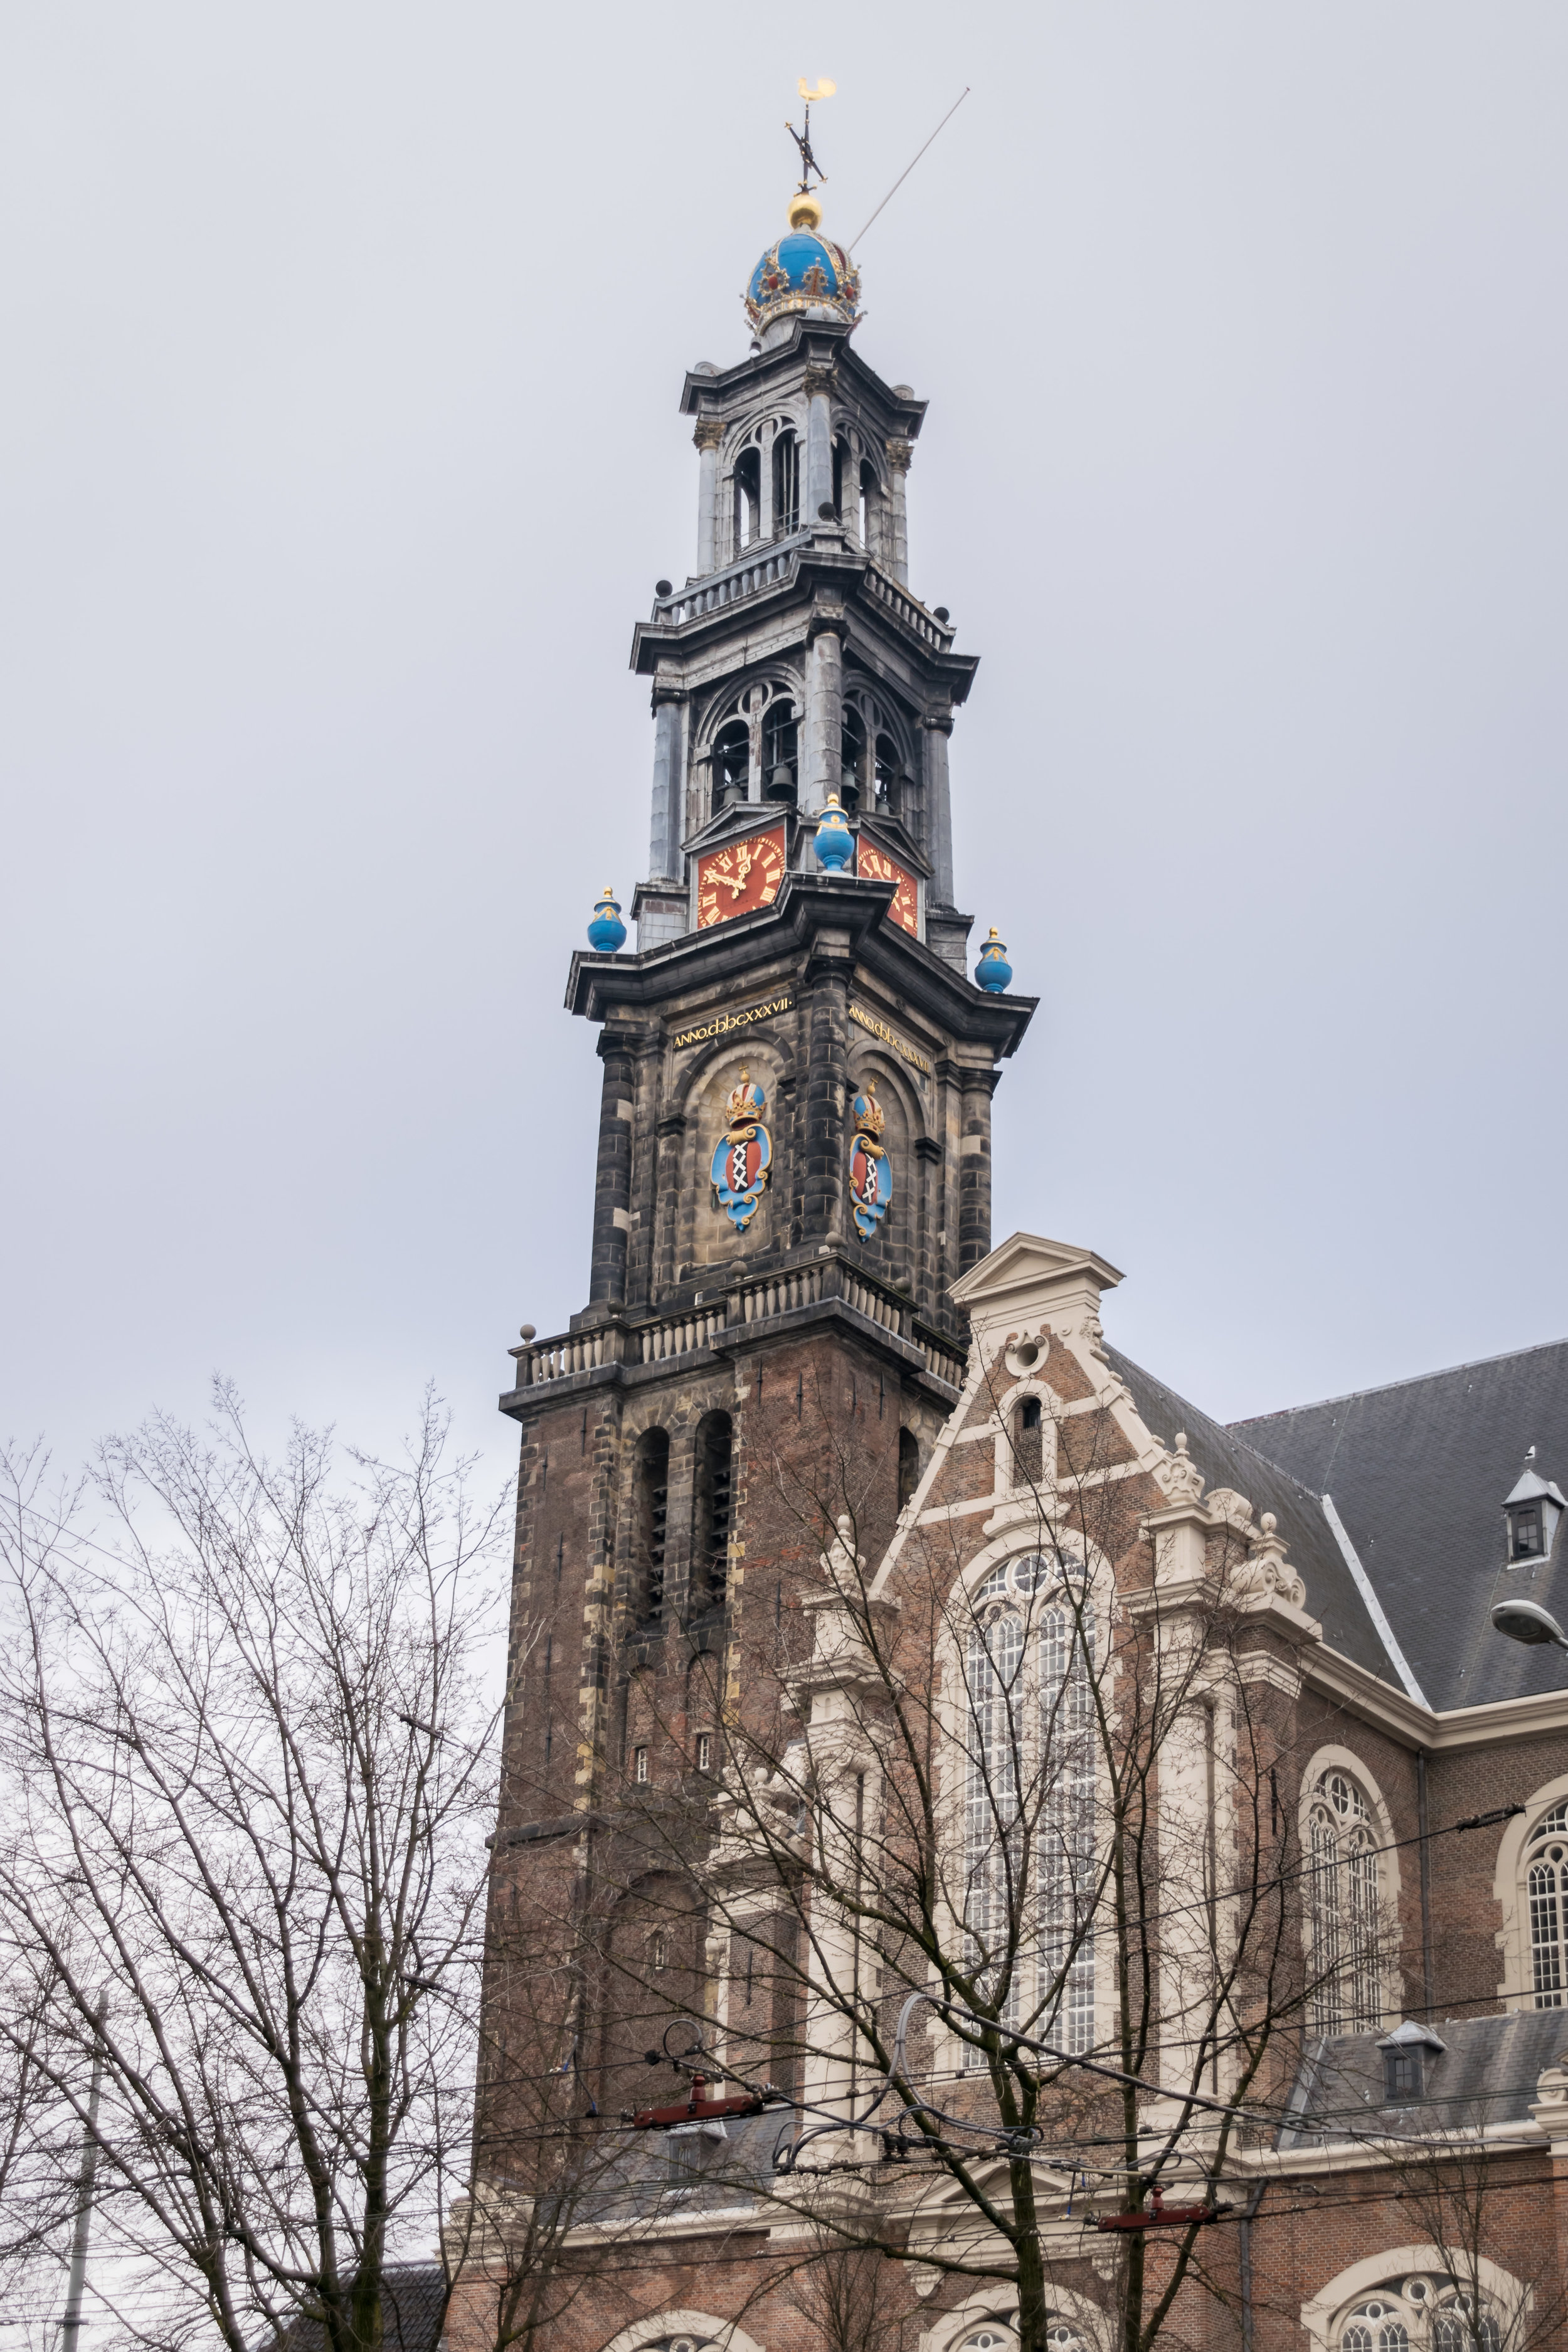 the 800-year-old Oude Kerk